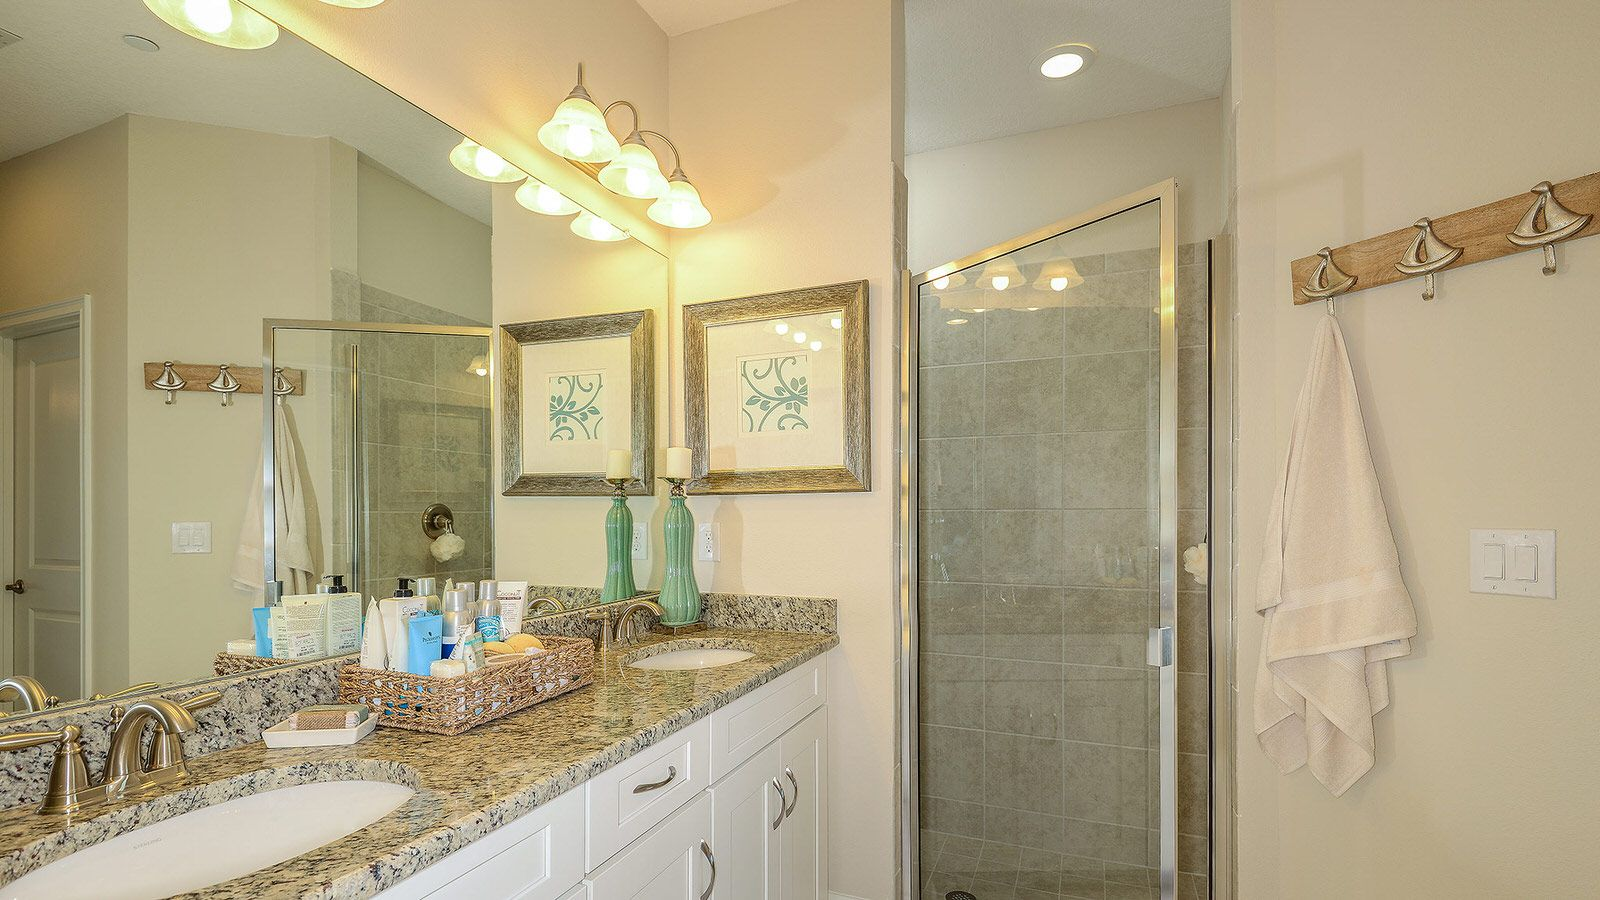 Bathroom featured in the Avanti VII By Taylor Morrison in Naples, FL